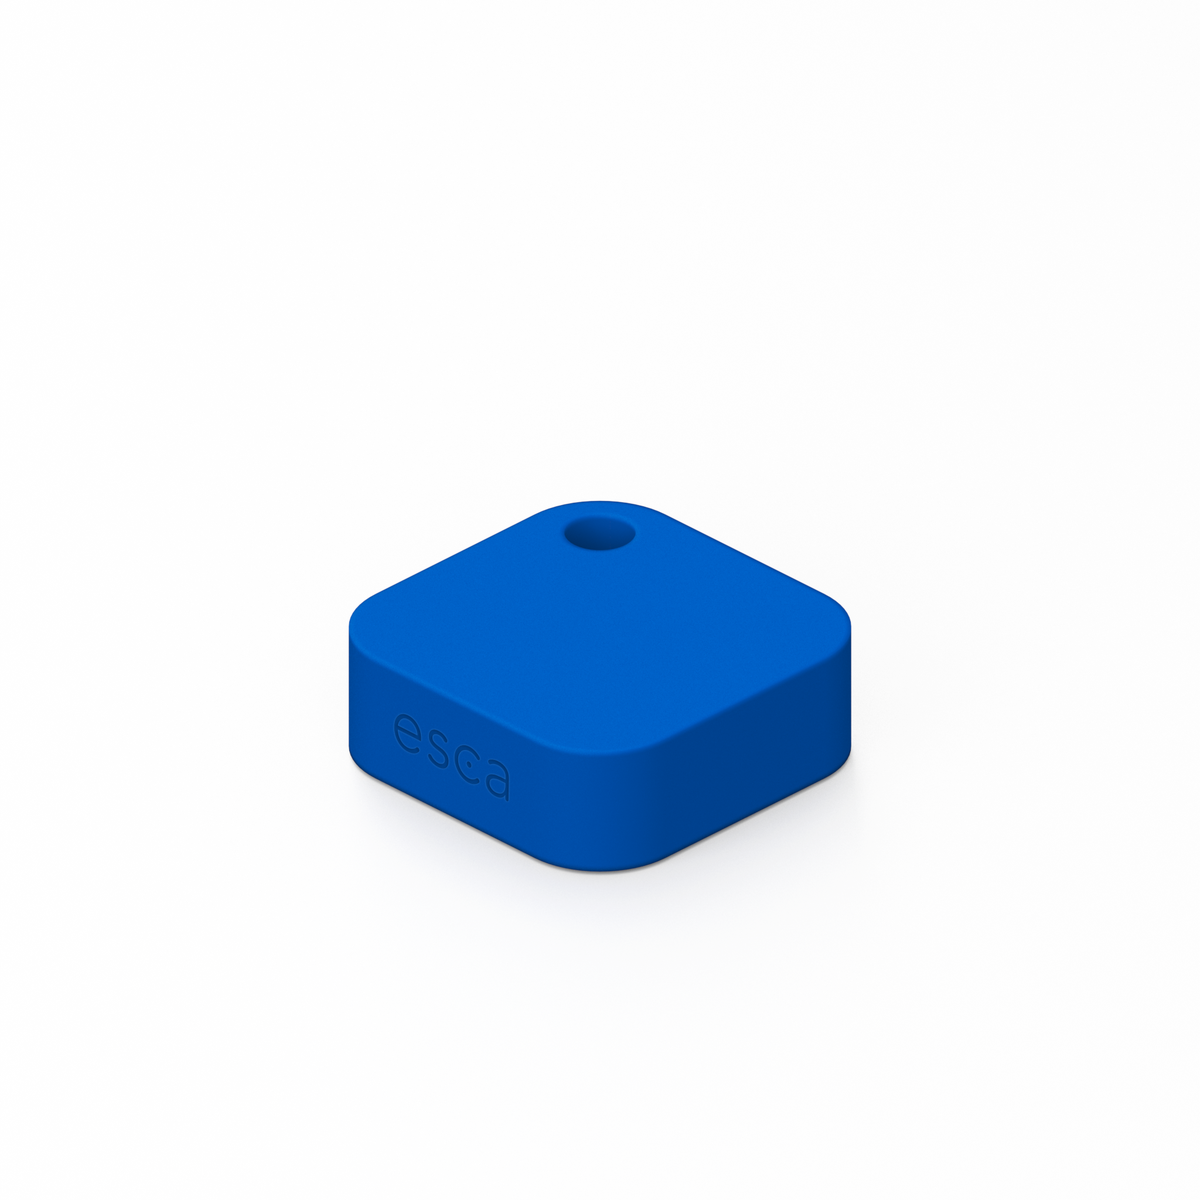 Introducing esca. Blue Bite's very own dual-mode BLE beacon. Read more here: http://t.co/1gnSqcLsz9 and visit esca.io http://t.co/7dKT9EYvsL